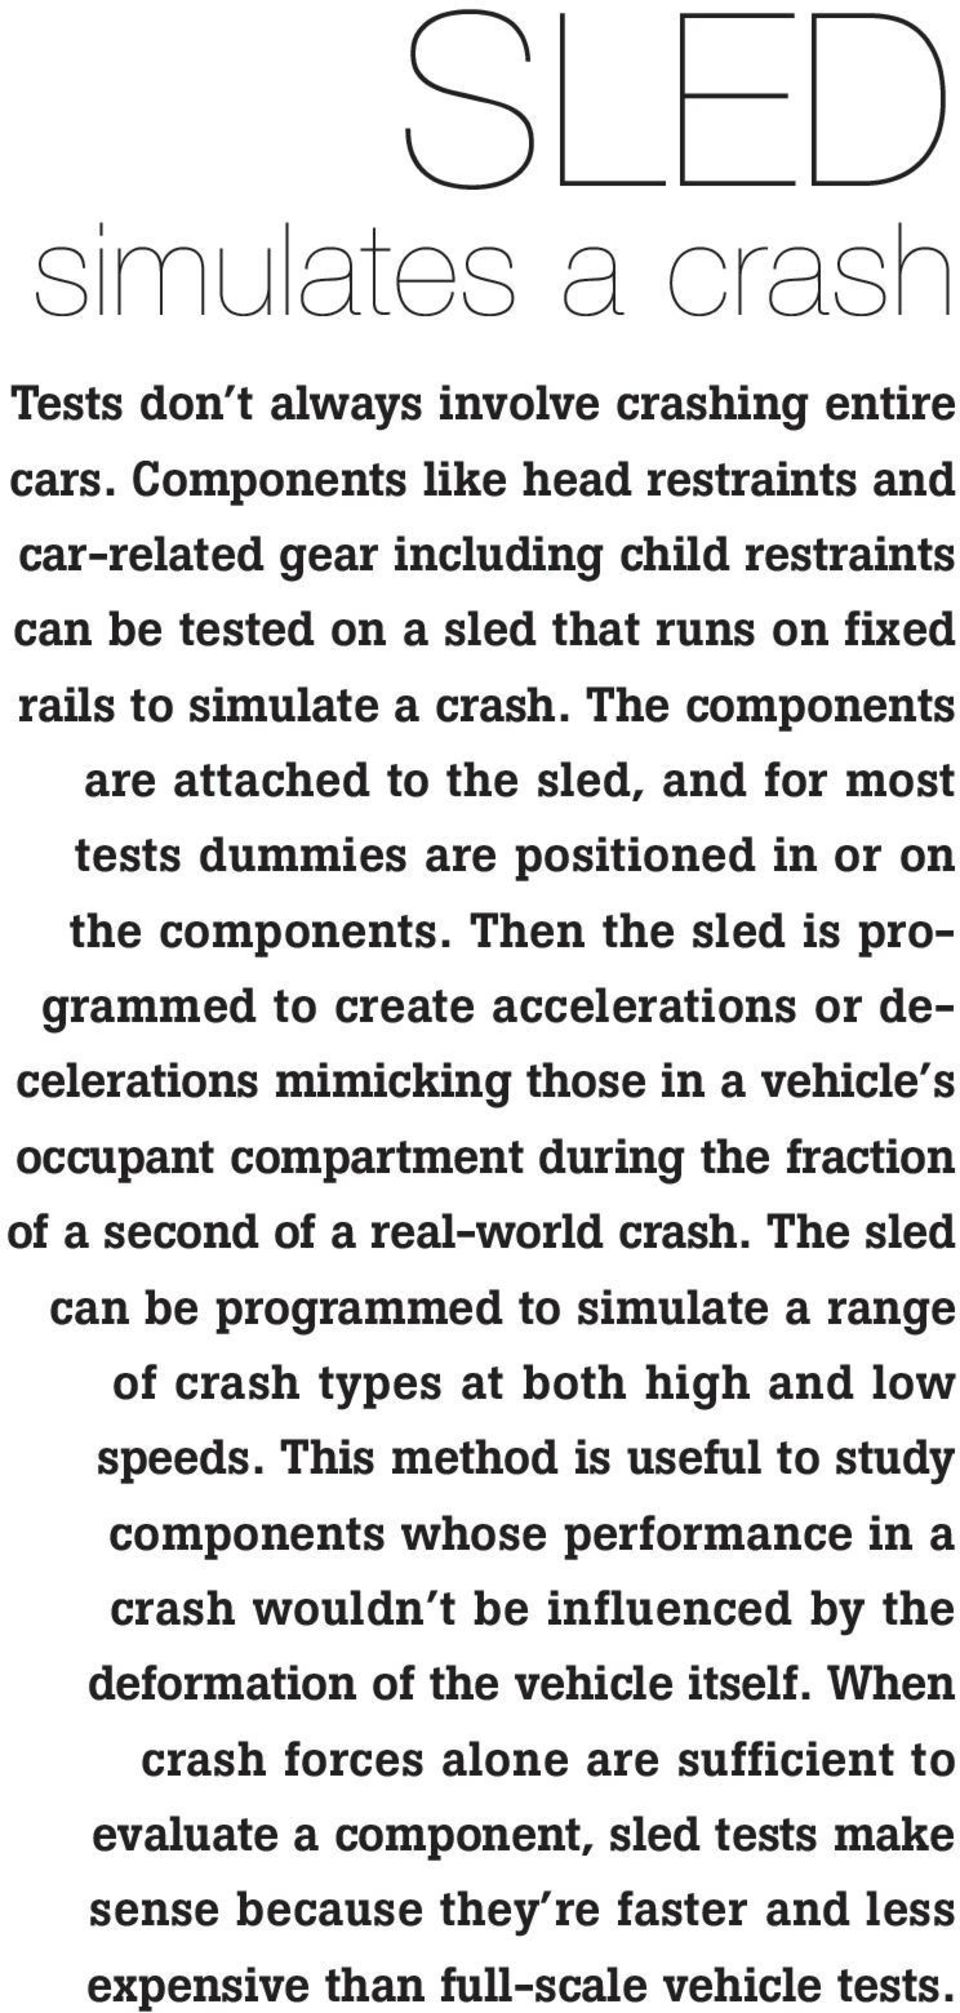 The components are attached to the sled, and for most tests dummies are positioned in or on the components.